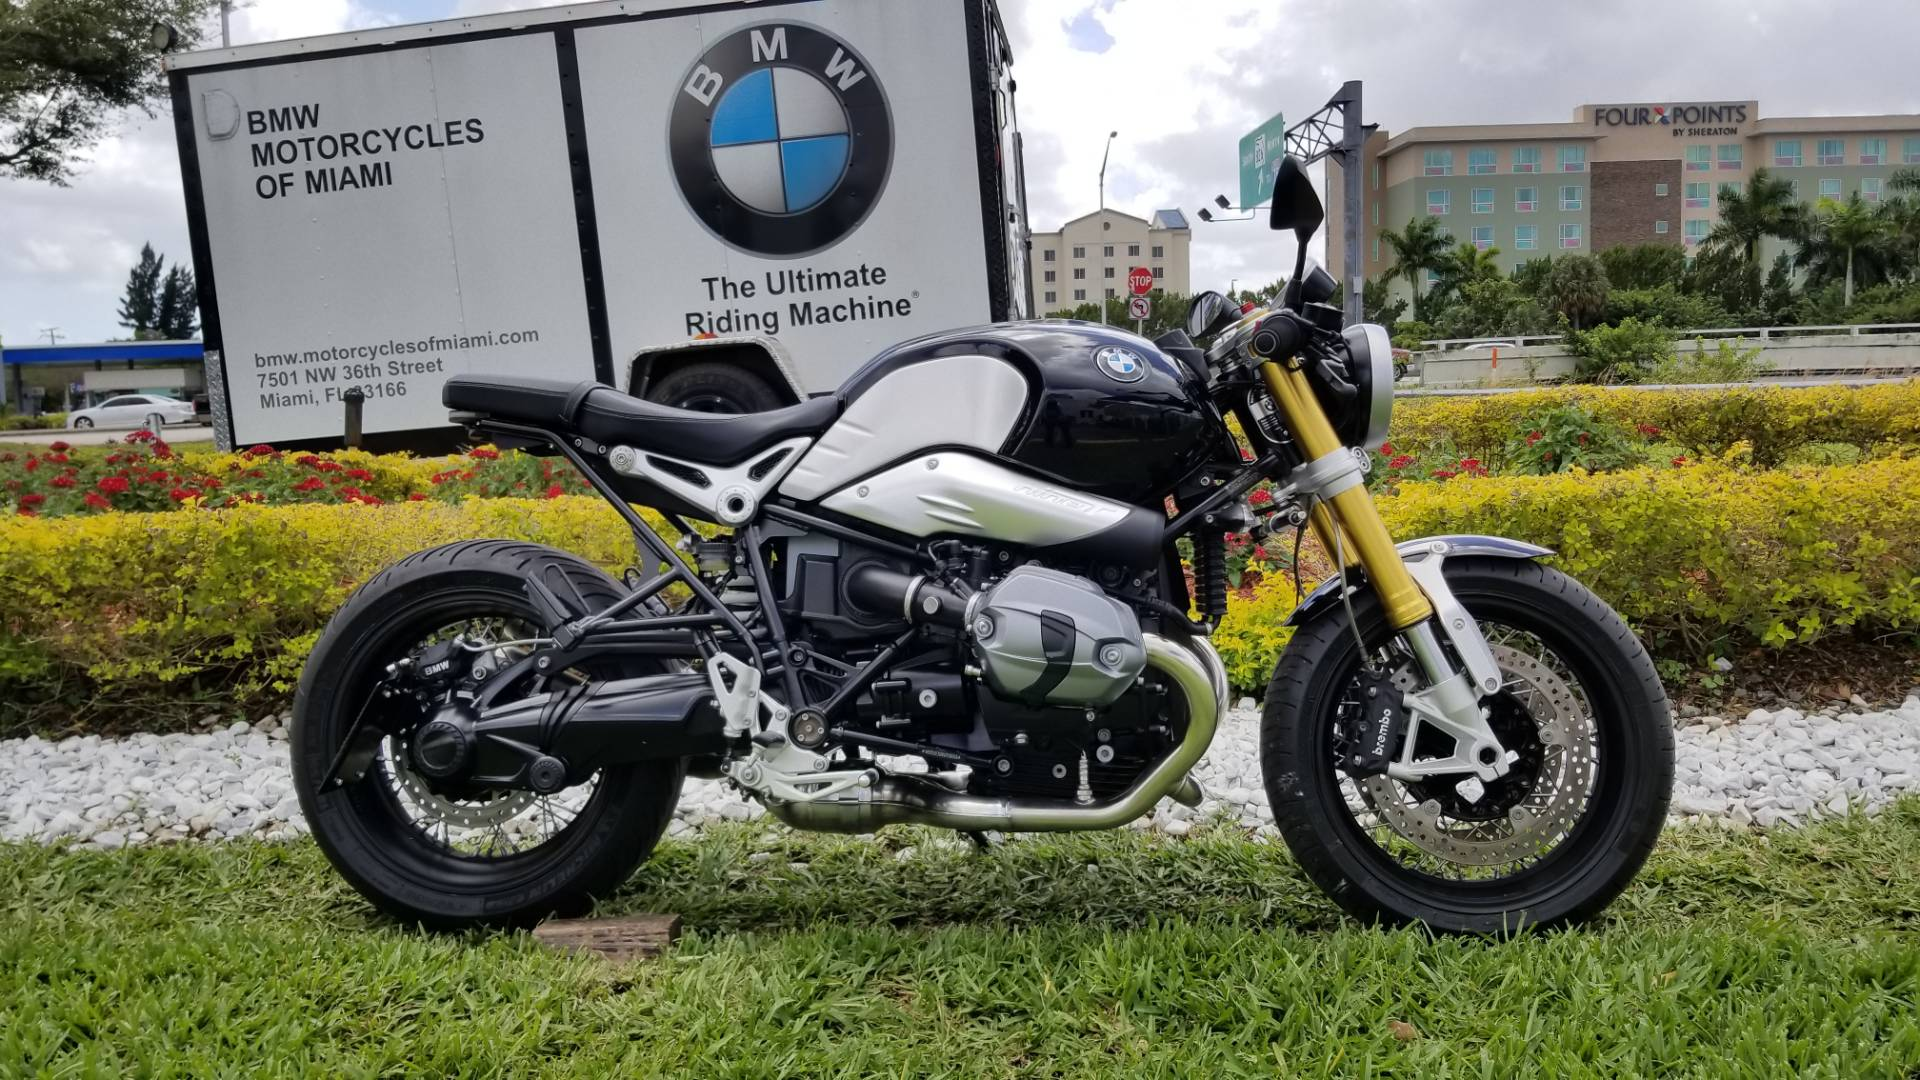 Used 2017 BMW R nine T For Sale, Pre owned BMW R nineT For Sale, BMW Motorcycle RnineT, BMW Motorcycles of Miami, Motorcycles of Miami, Motorcycles Miami - Photo 21